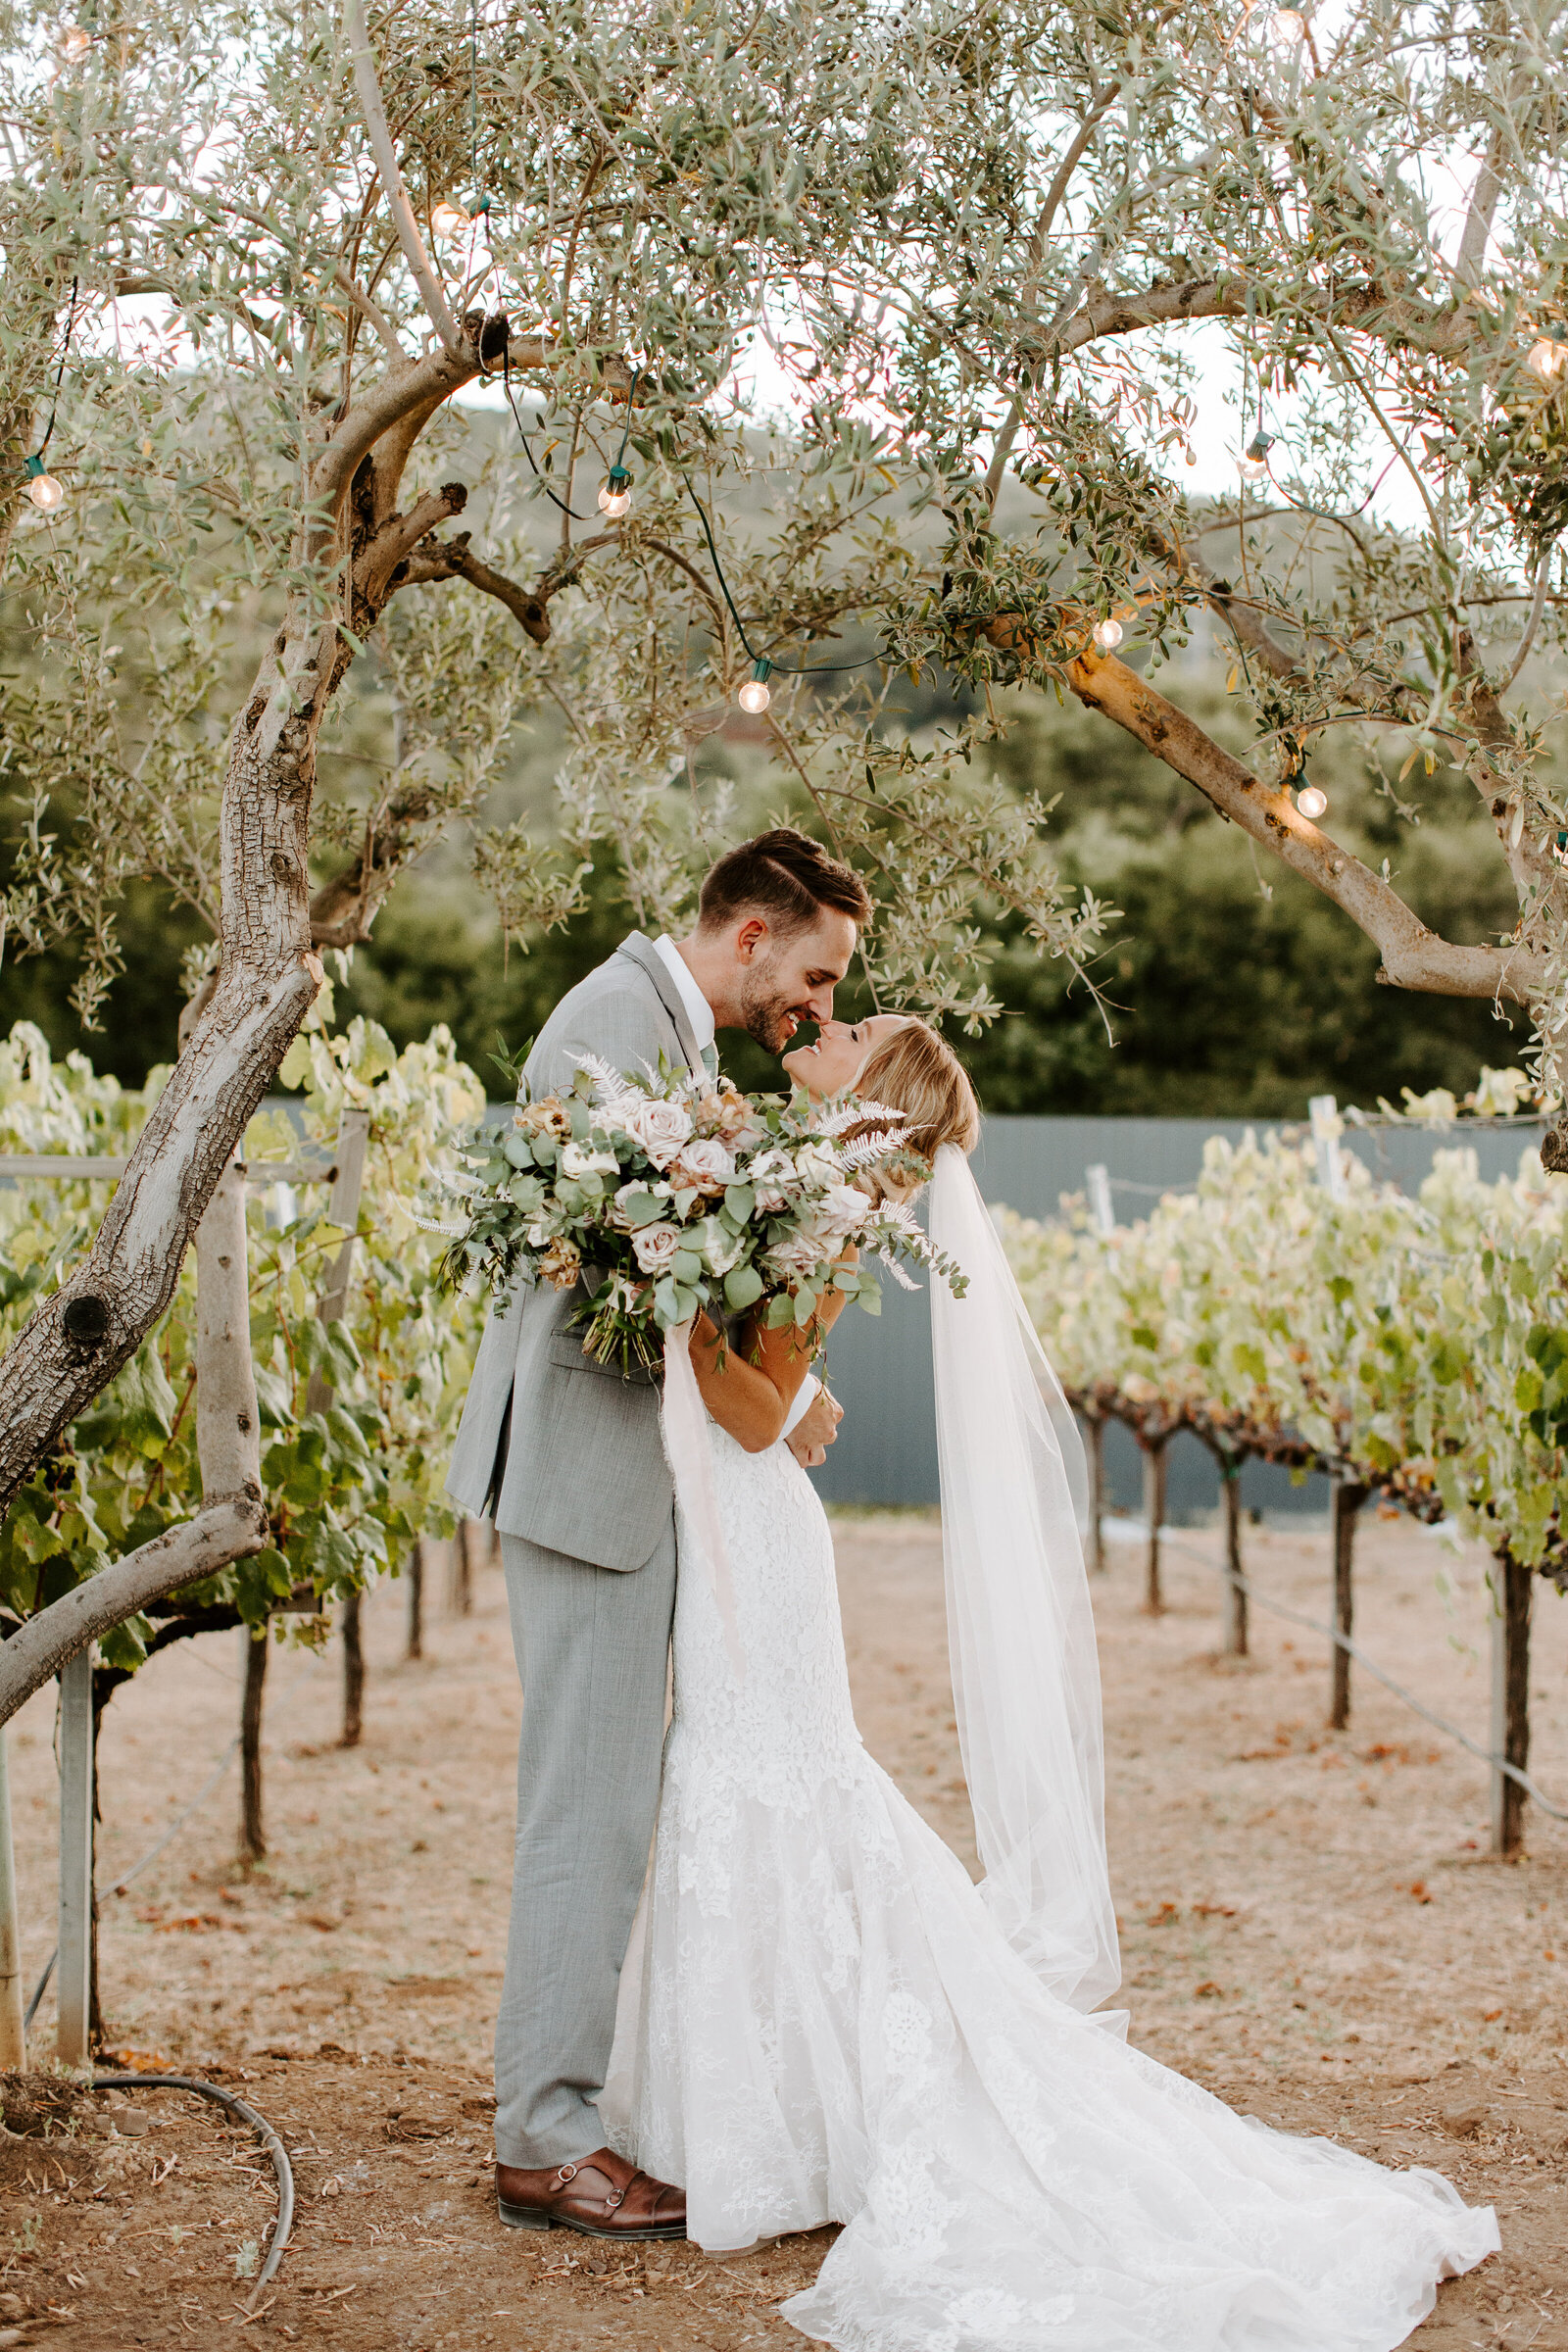 Megan-Ryan_Sycamore-Creek-Vineyards_Hannah-Berglund-Photography-829